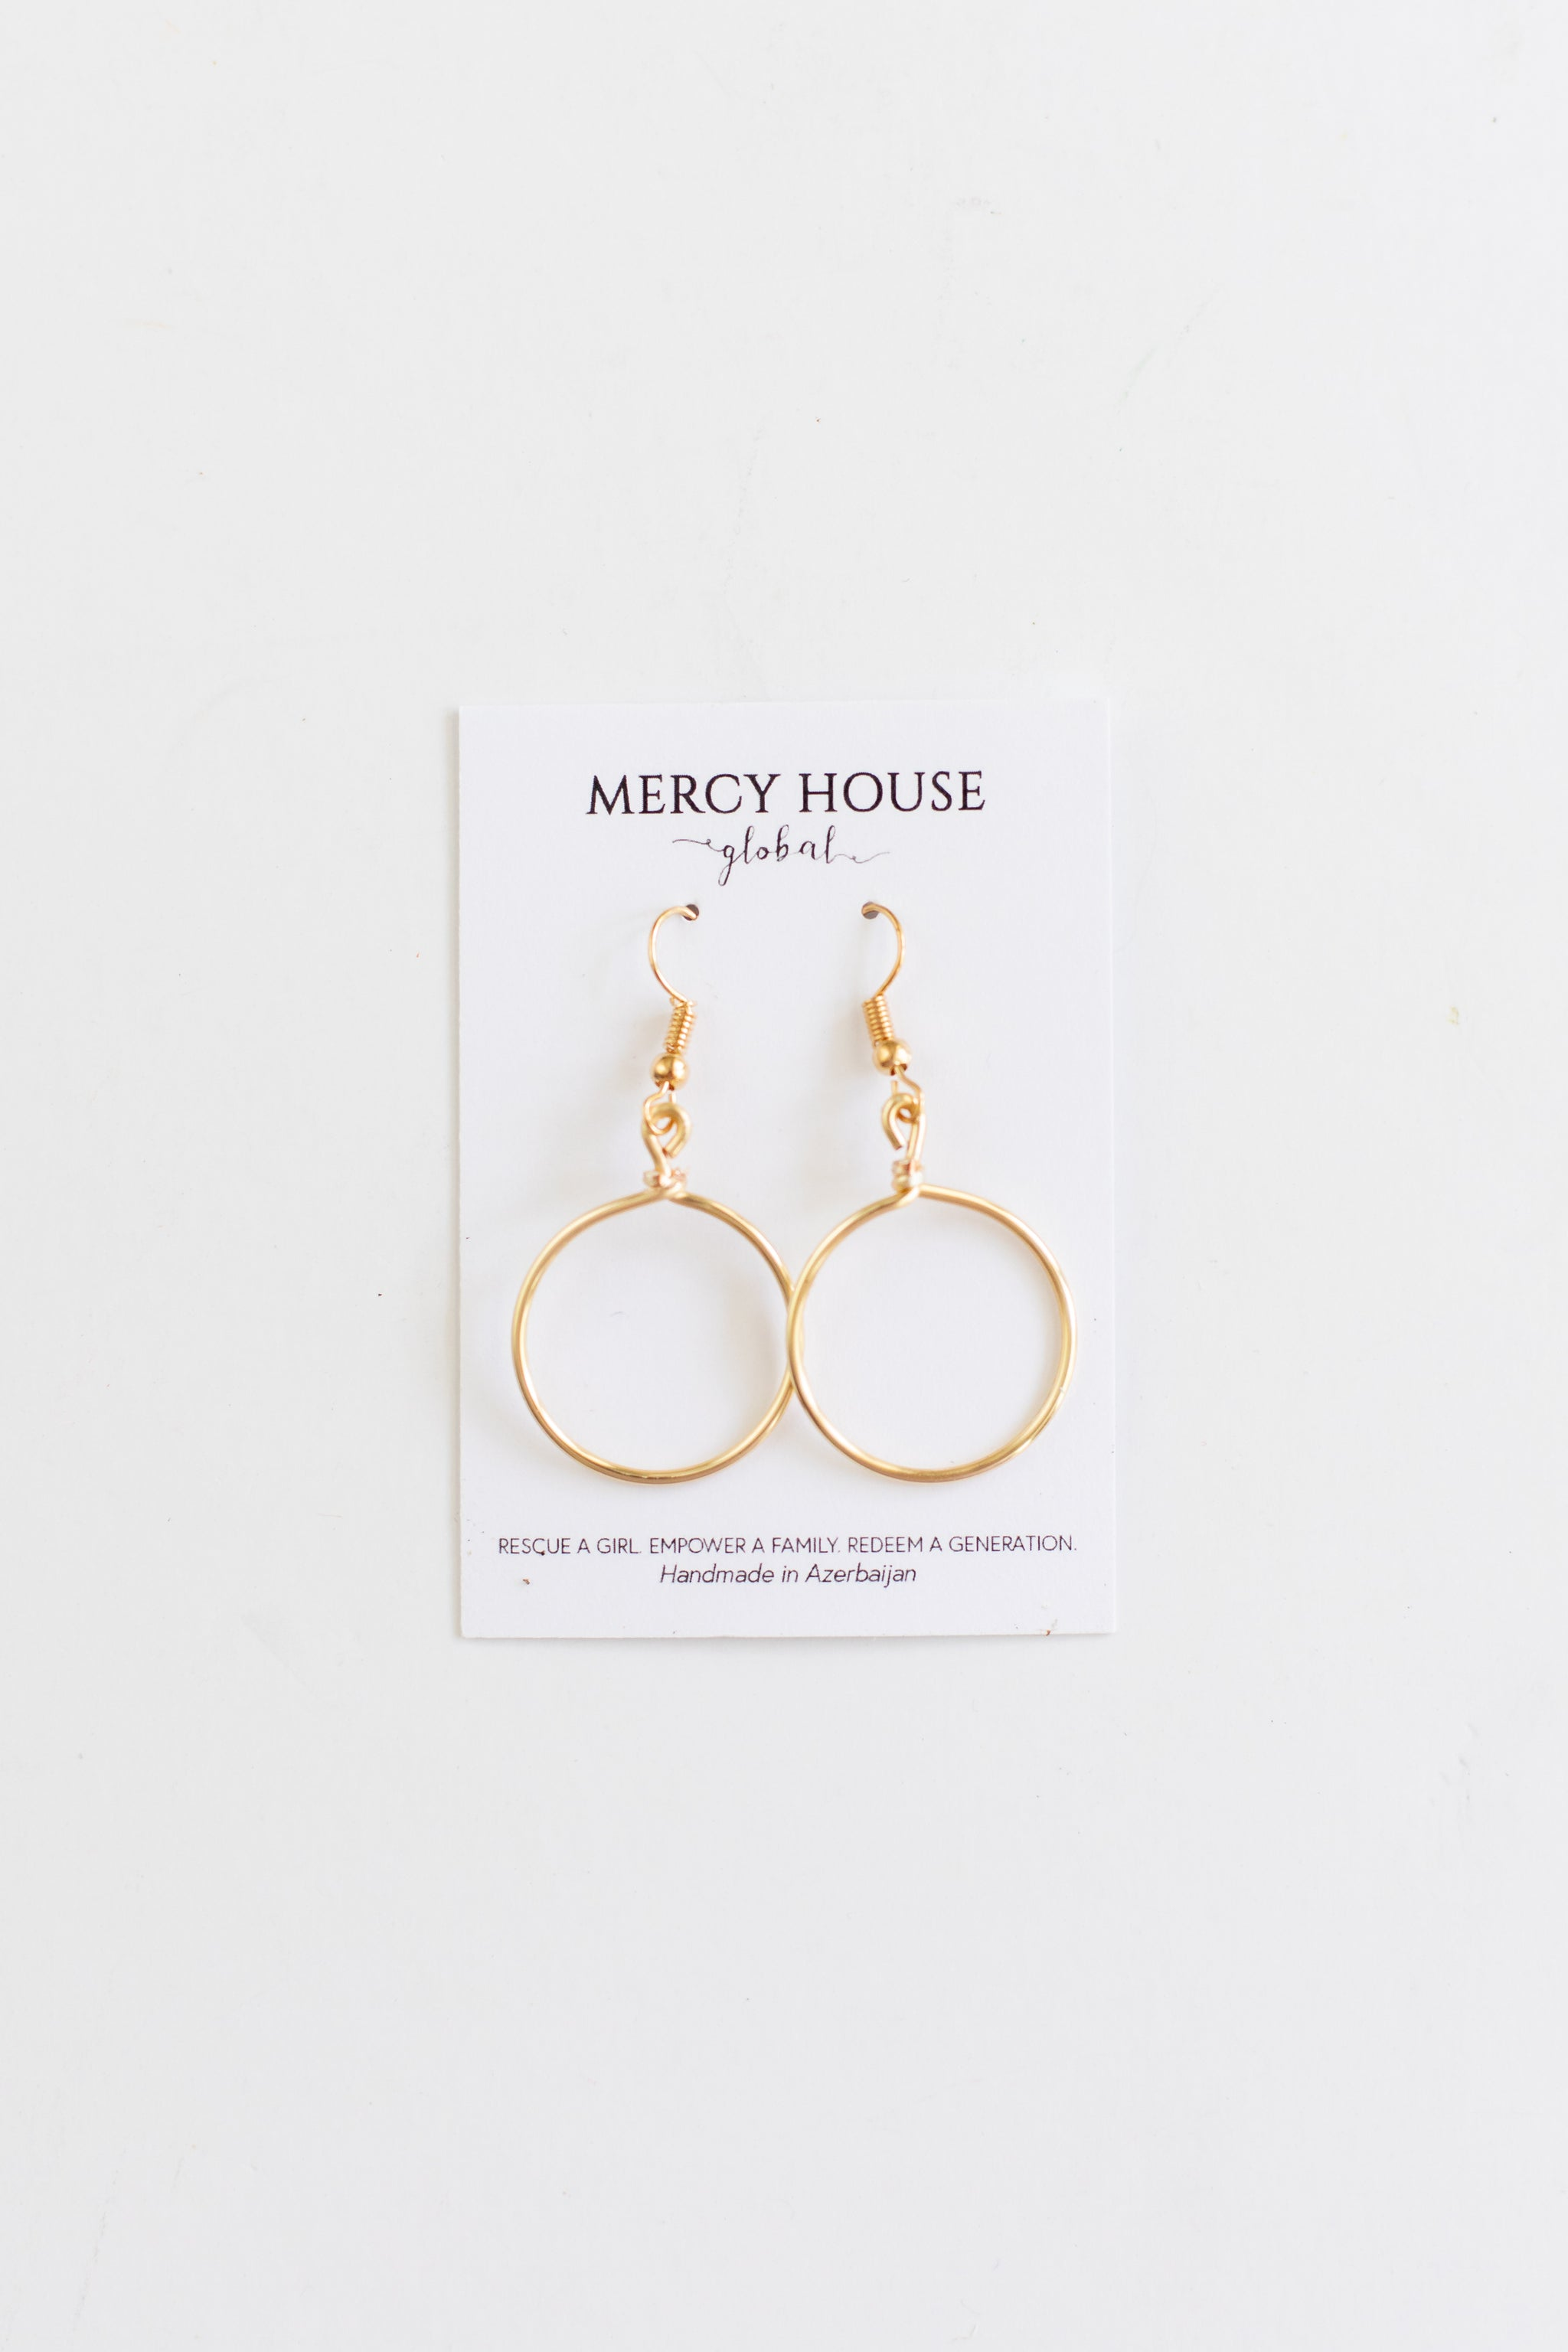 Gold Circle Earrings Earring - Fair Trade - Mercy House Global